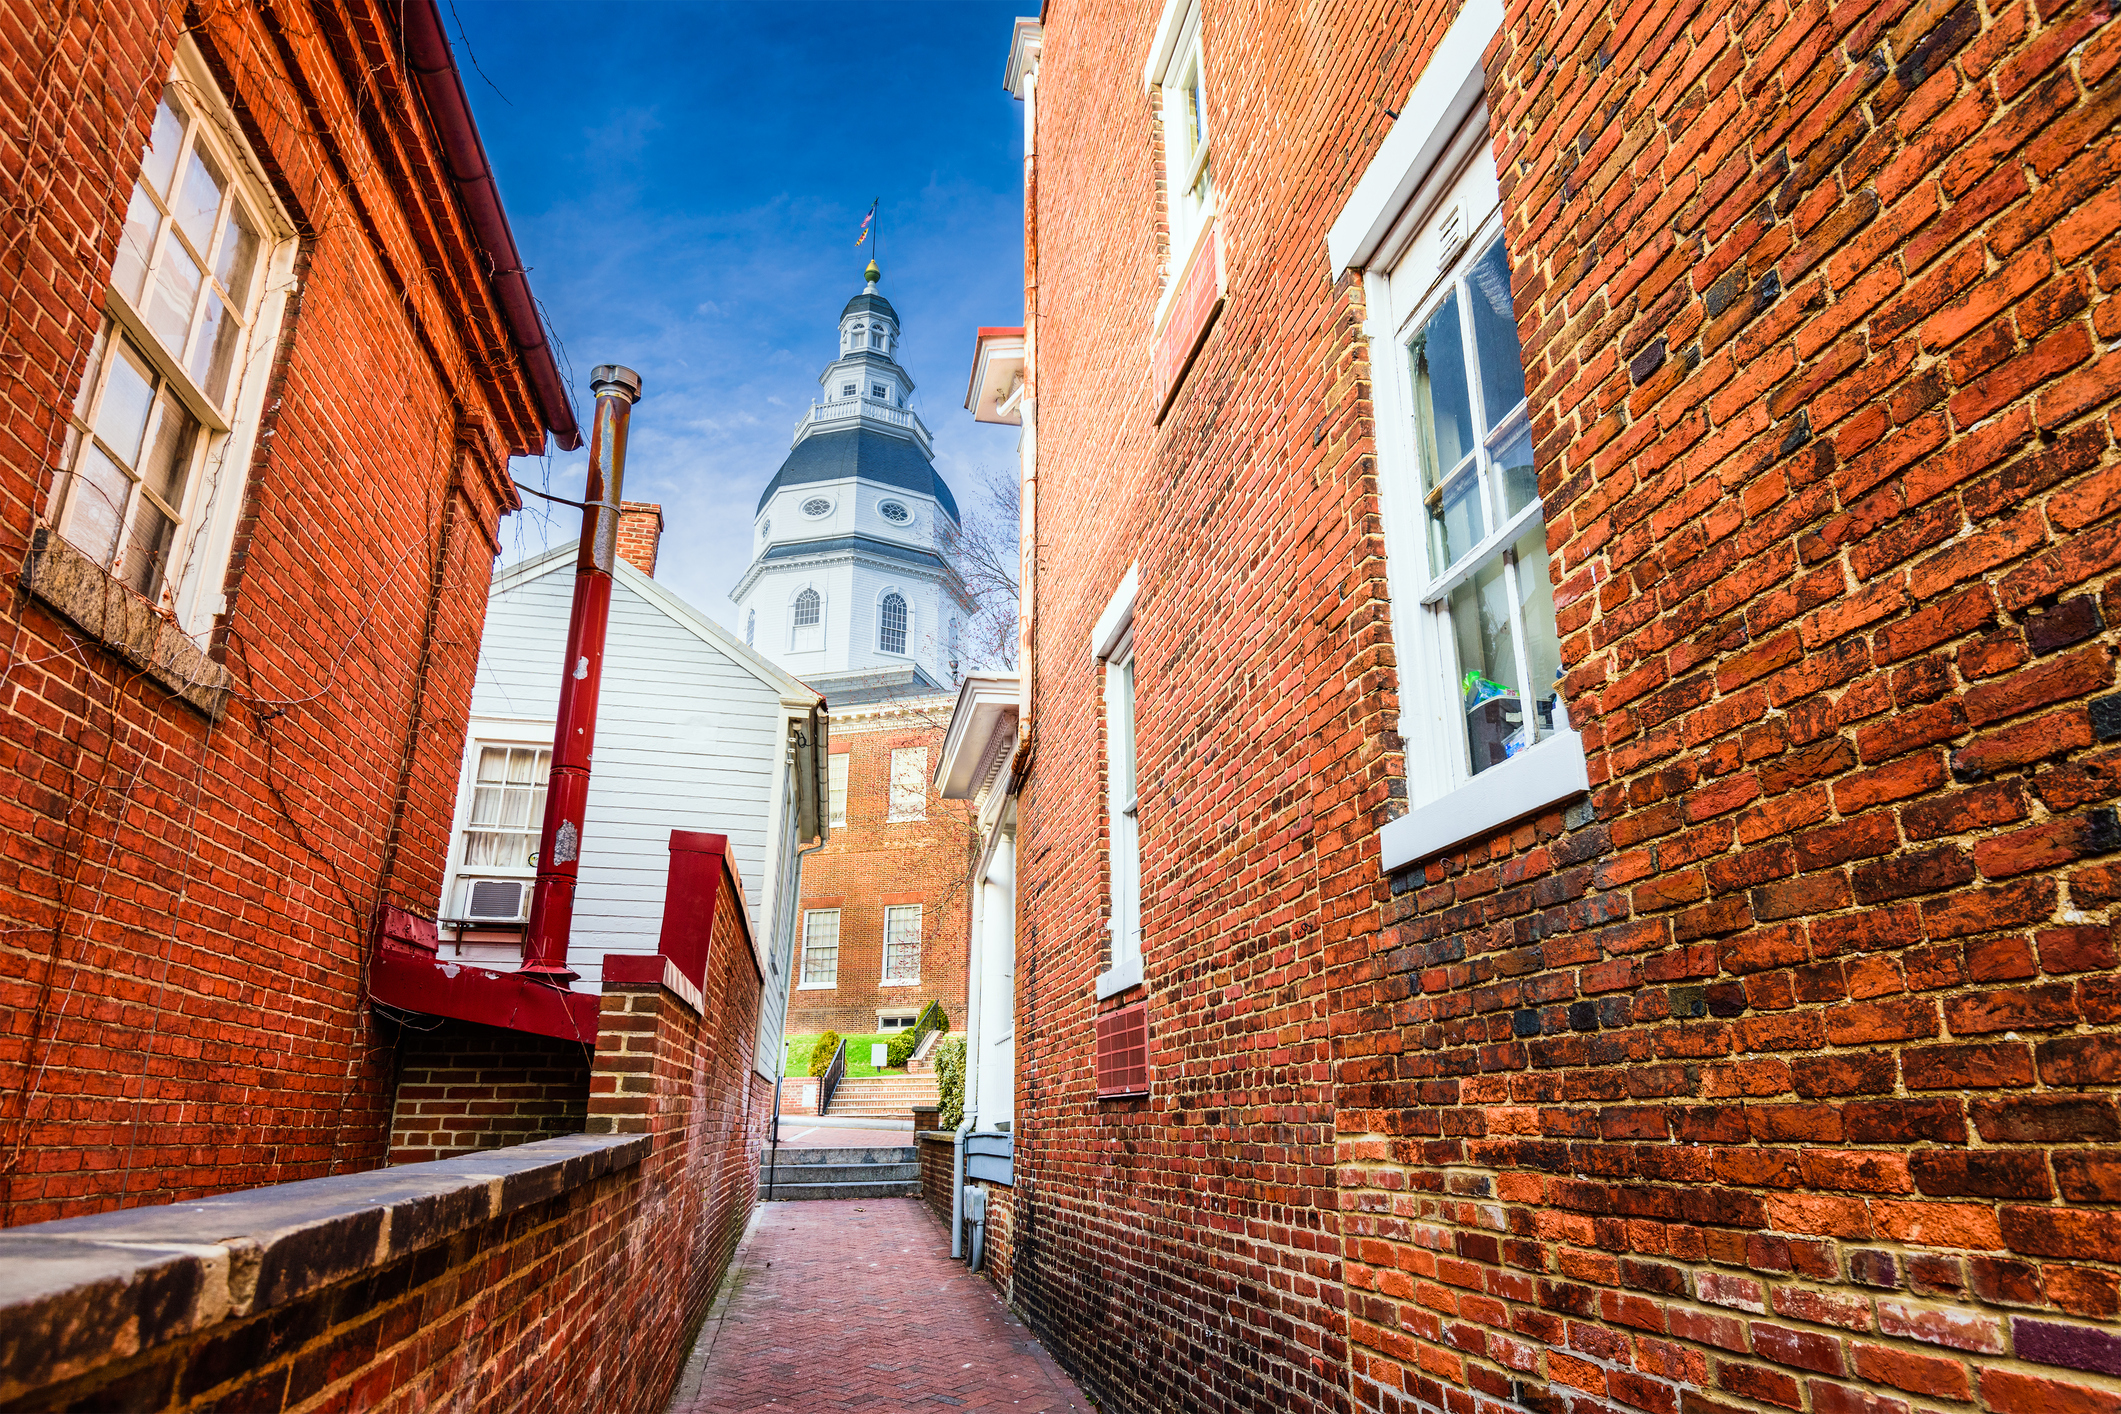 Annapolis, Maryland, USA view of the Maryland State House from a nearby alleyway.